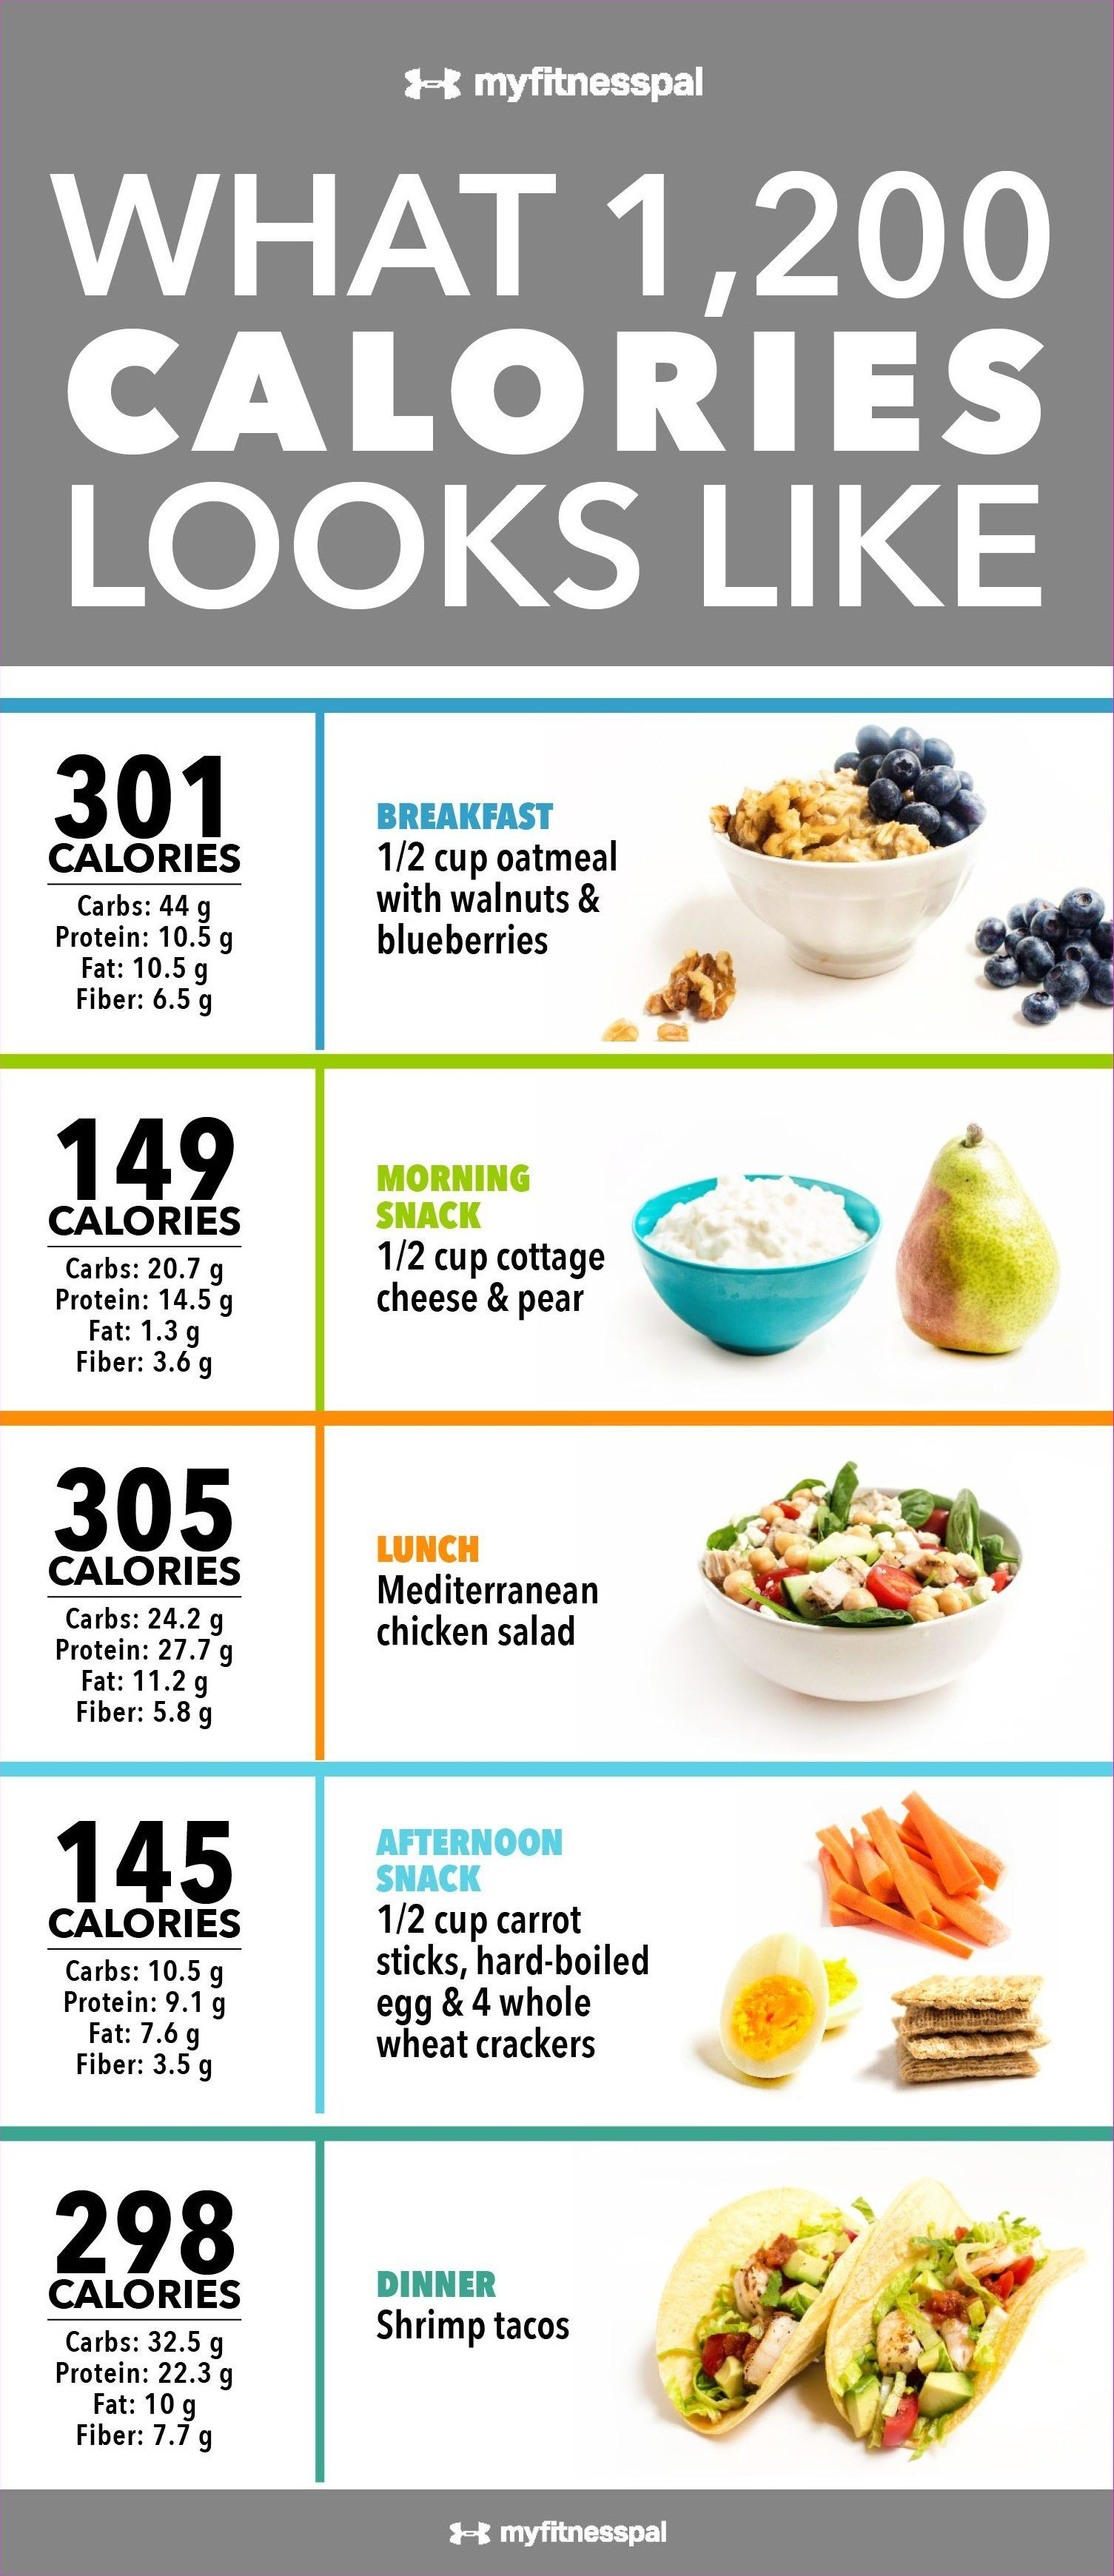 Weight Loss Diets - 3 Sure Fire Ways to Lose a Pound Daily With at ...